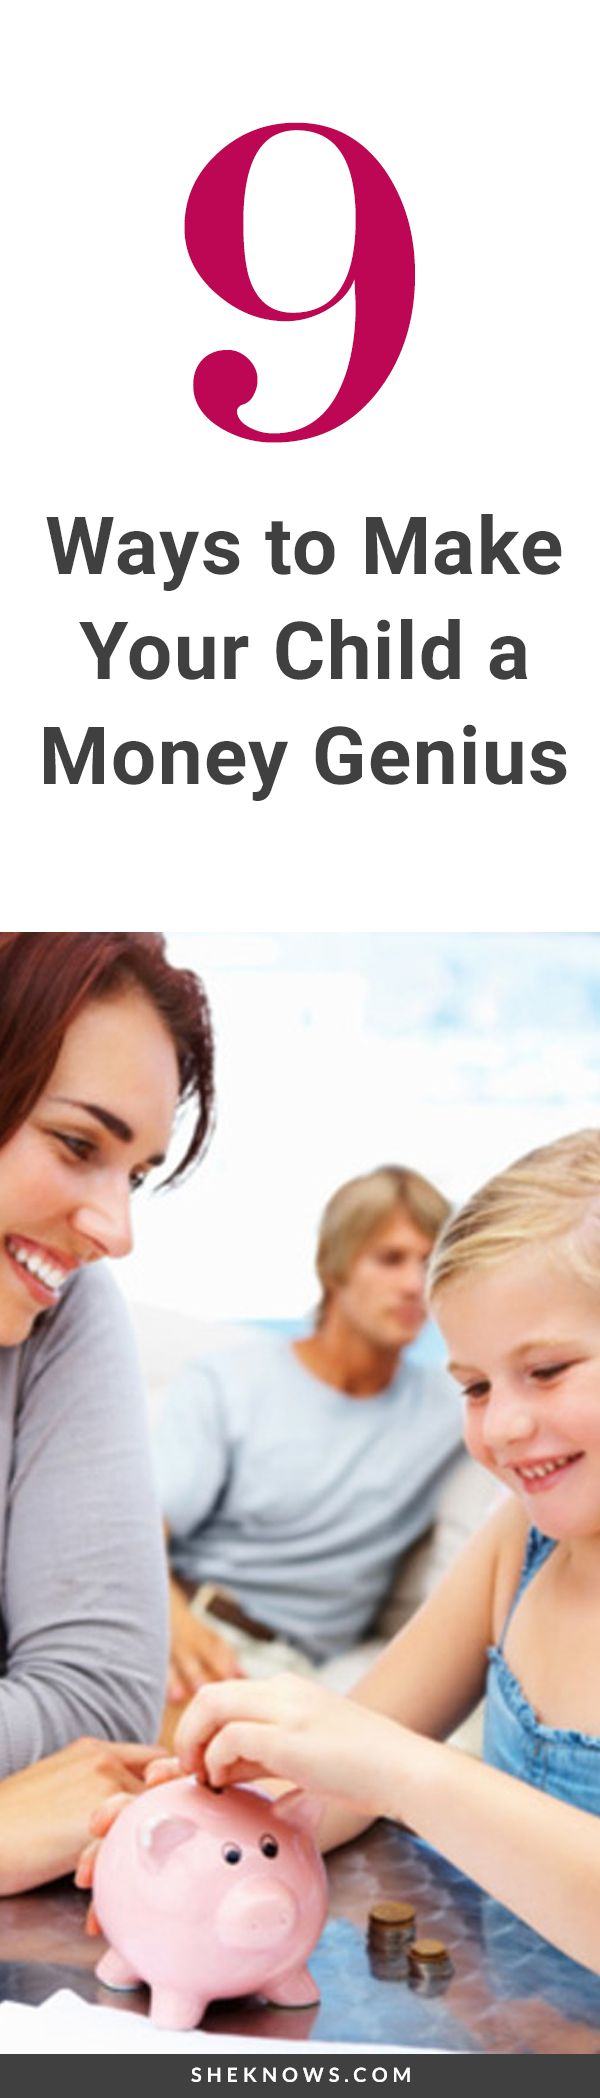 9 questions about parenting and money answered by Beth Kobliner, financial guru.